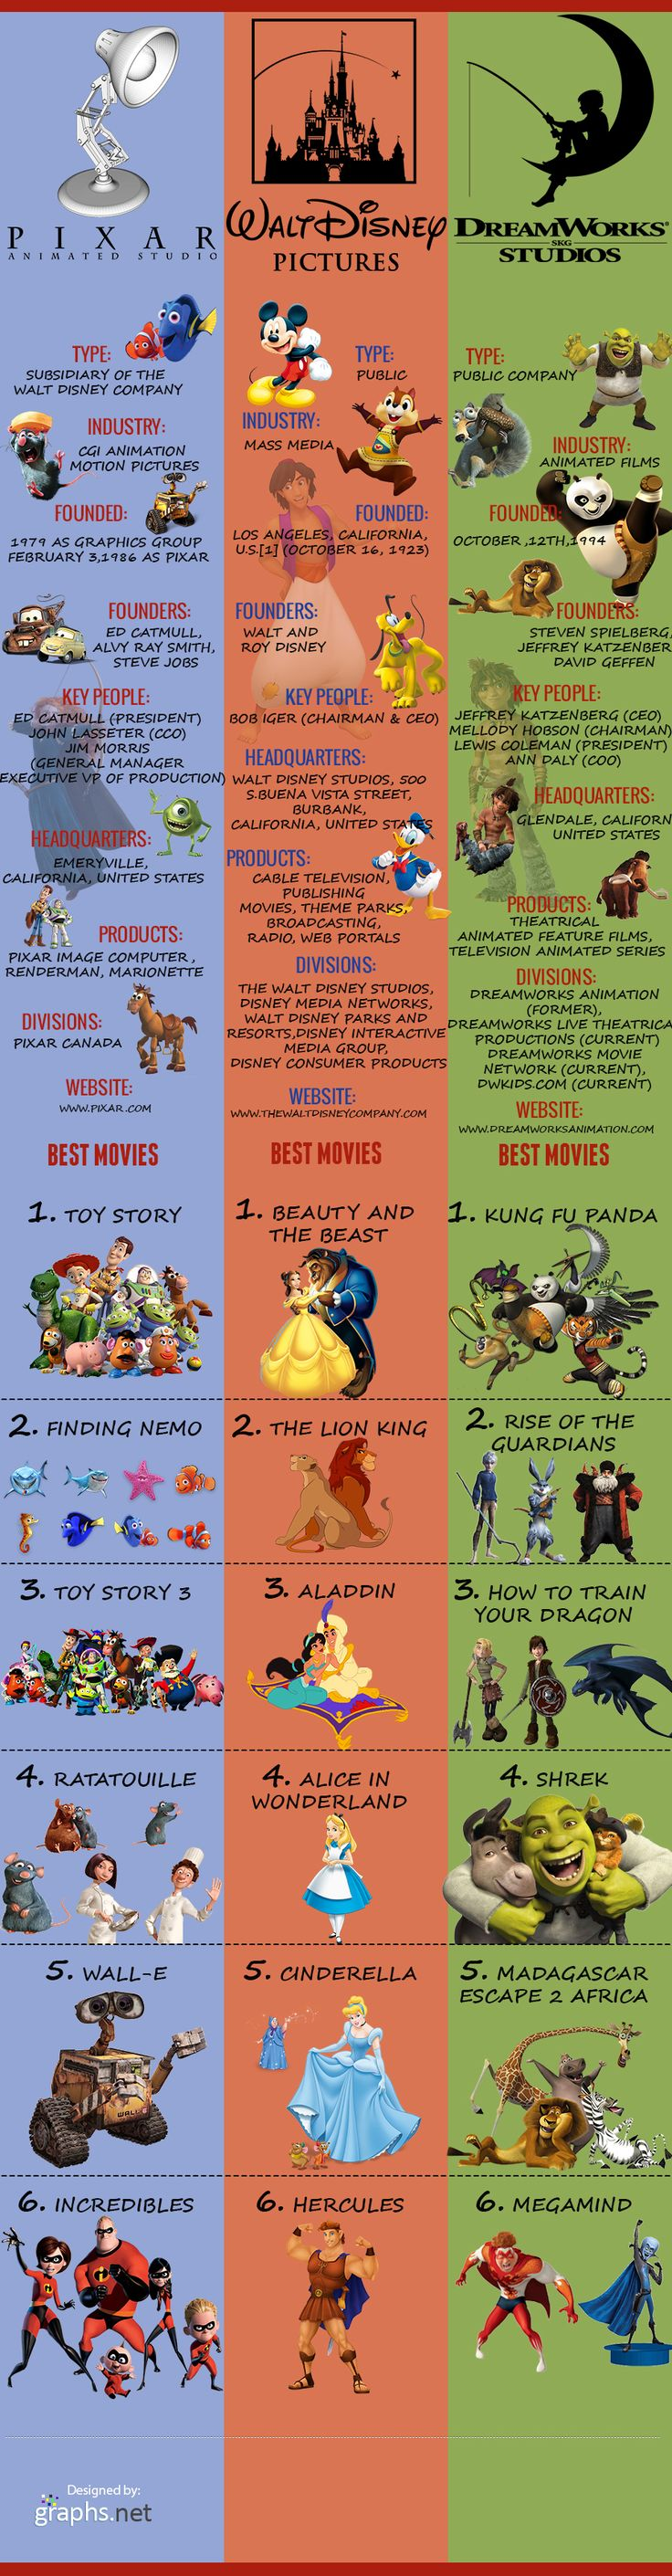 Pixar vs DreamWorks vs Disney – Comparative Statistics Infographic (though I disagree with the best movies slightly)